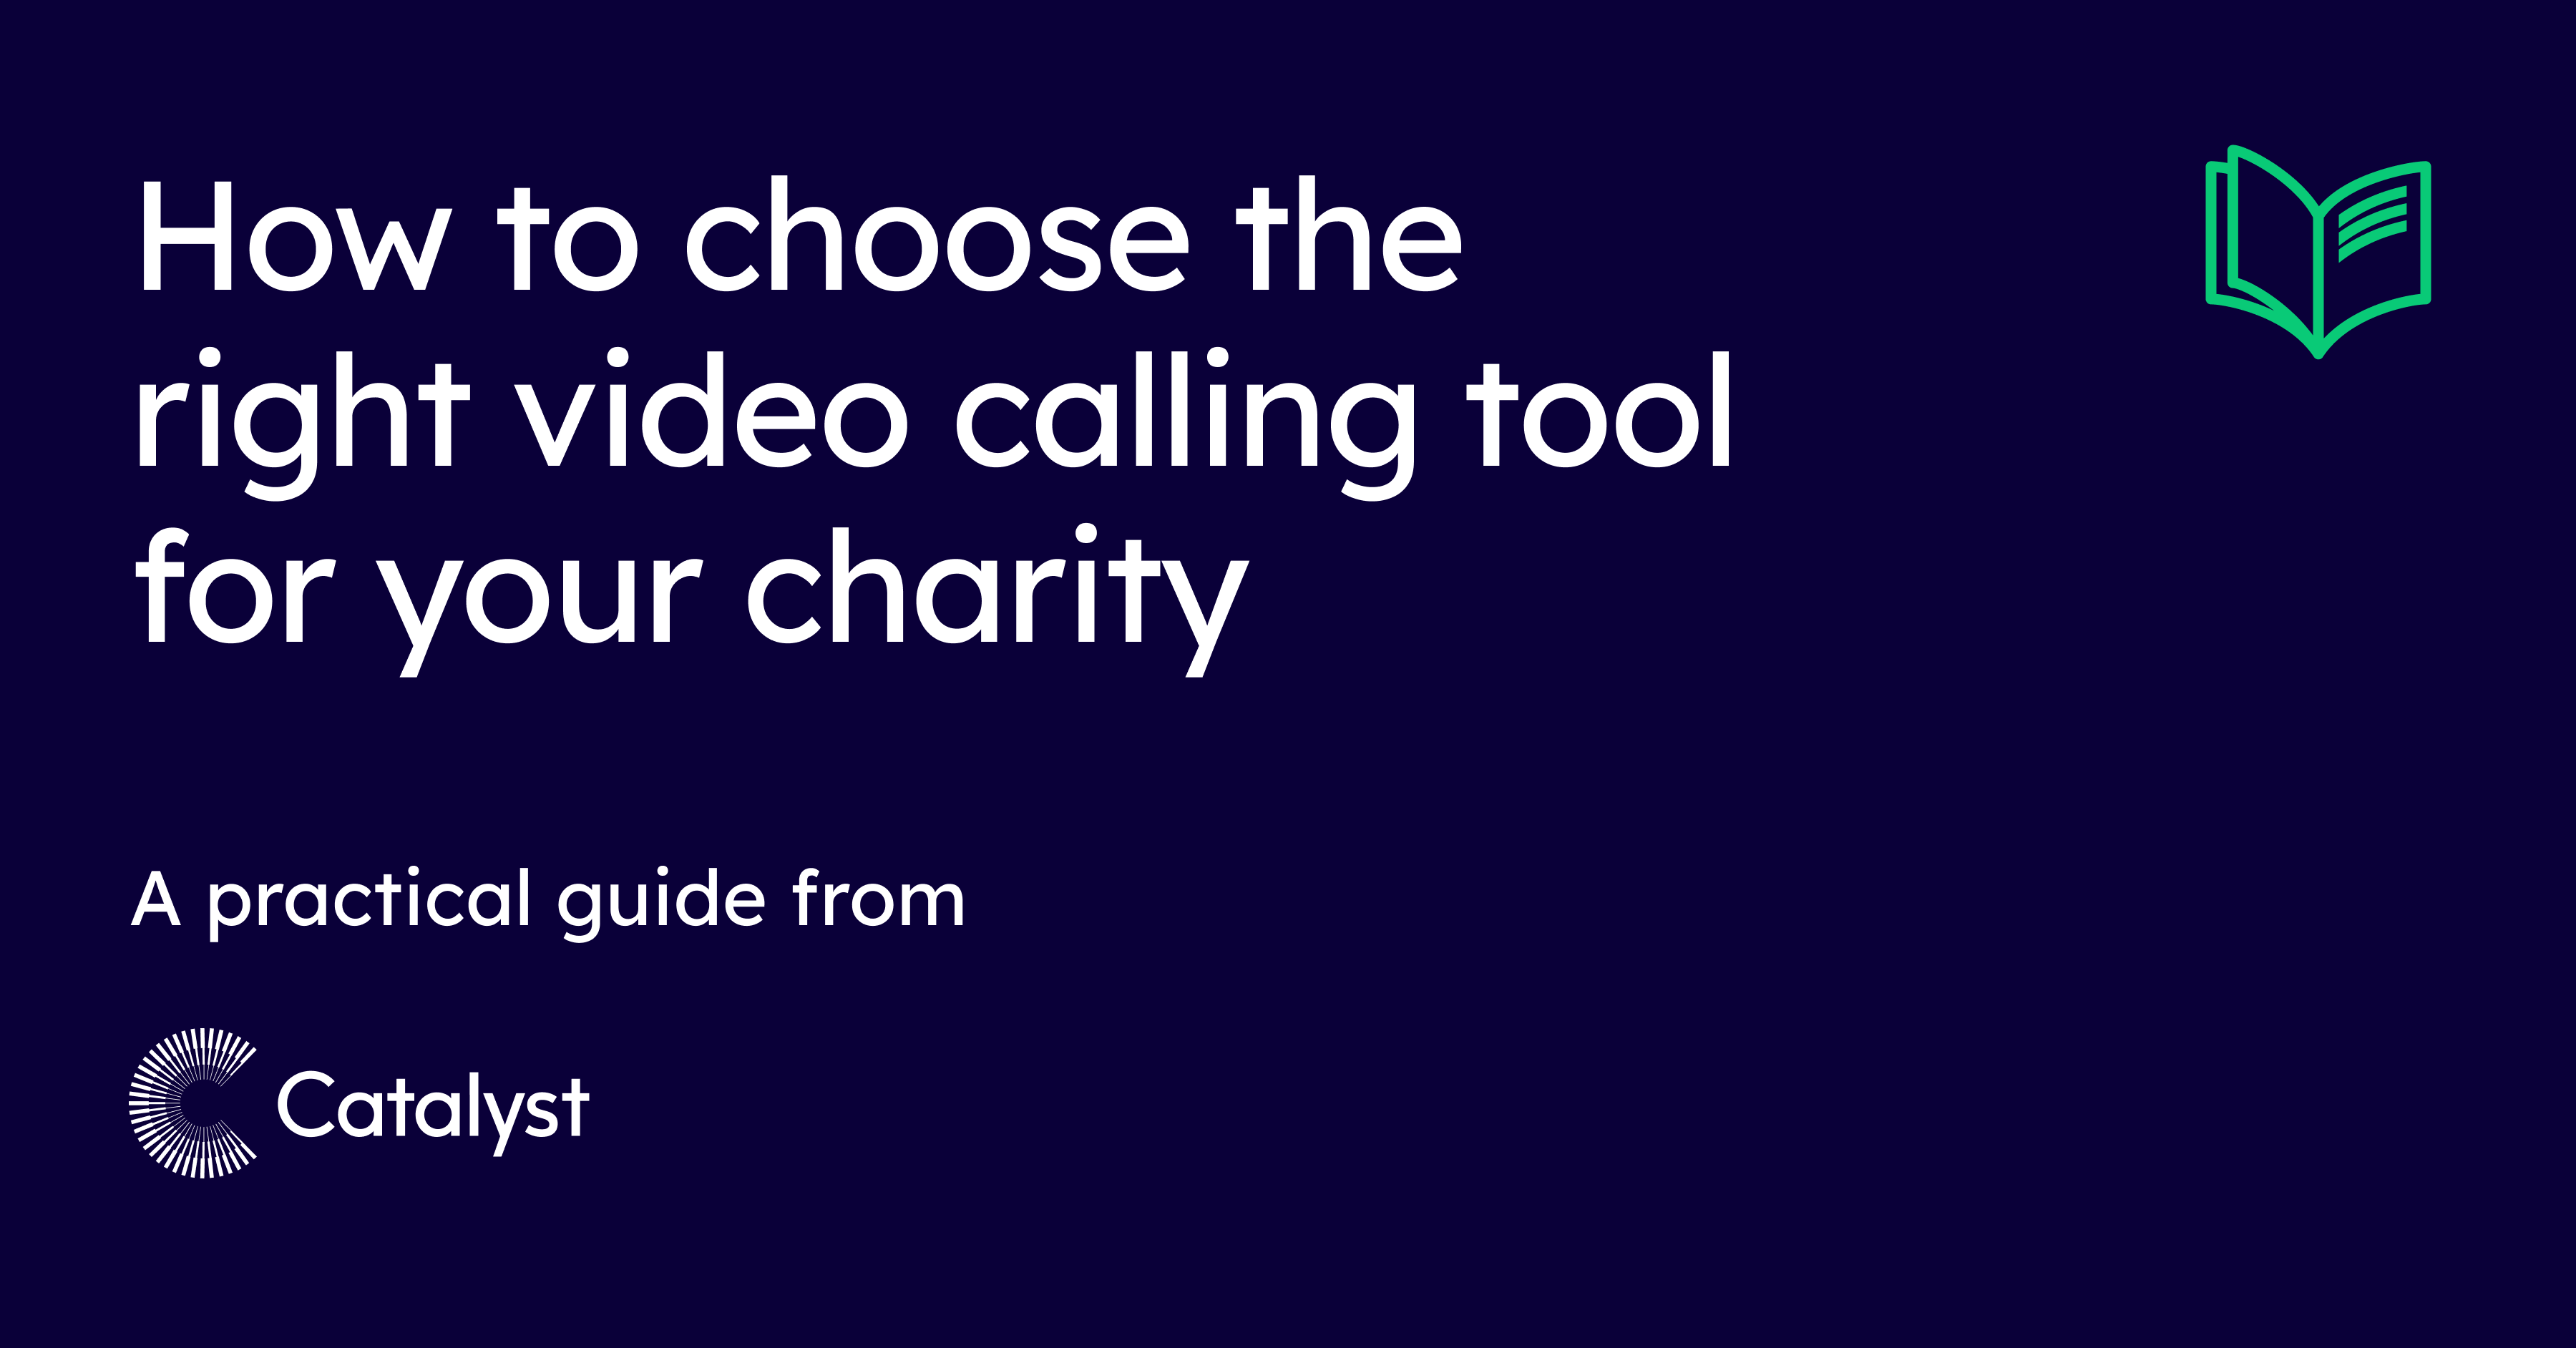 How to choose the right video calling tool for your charity